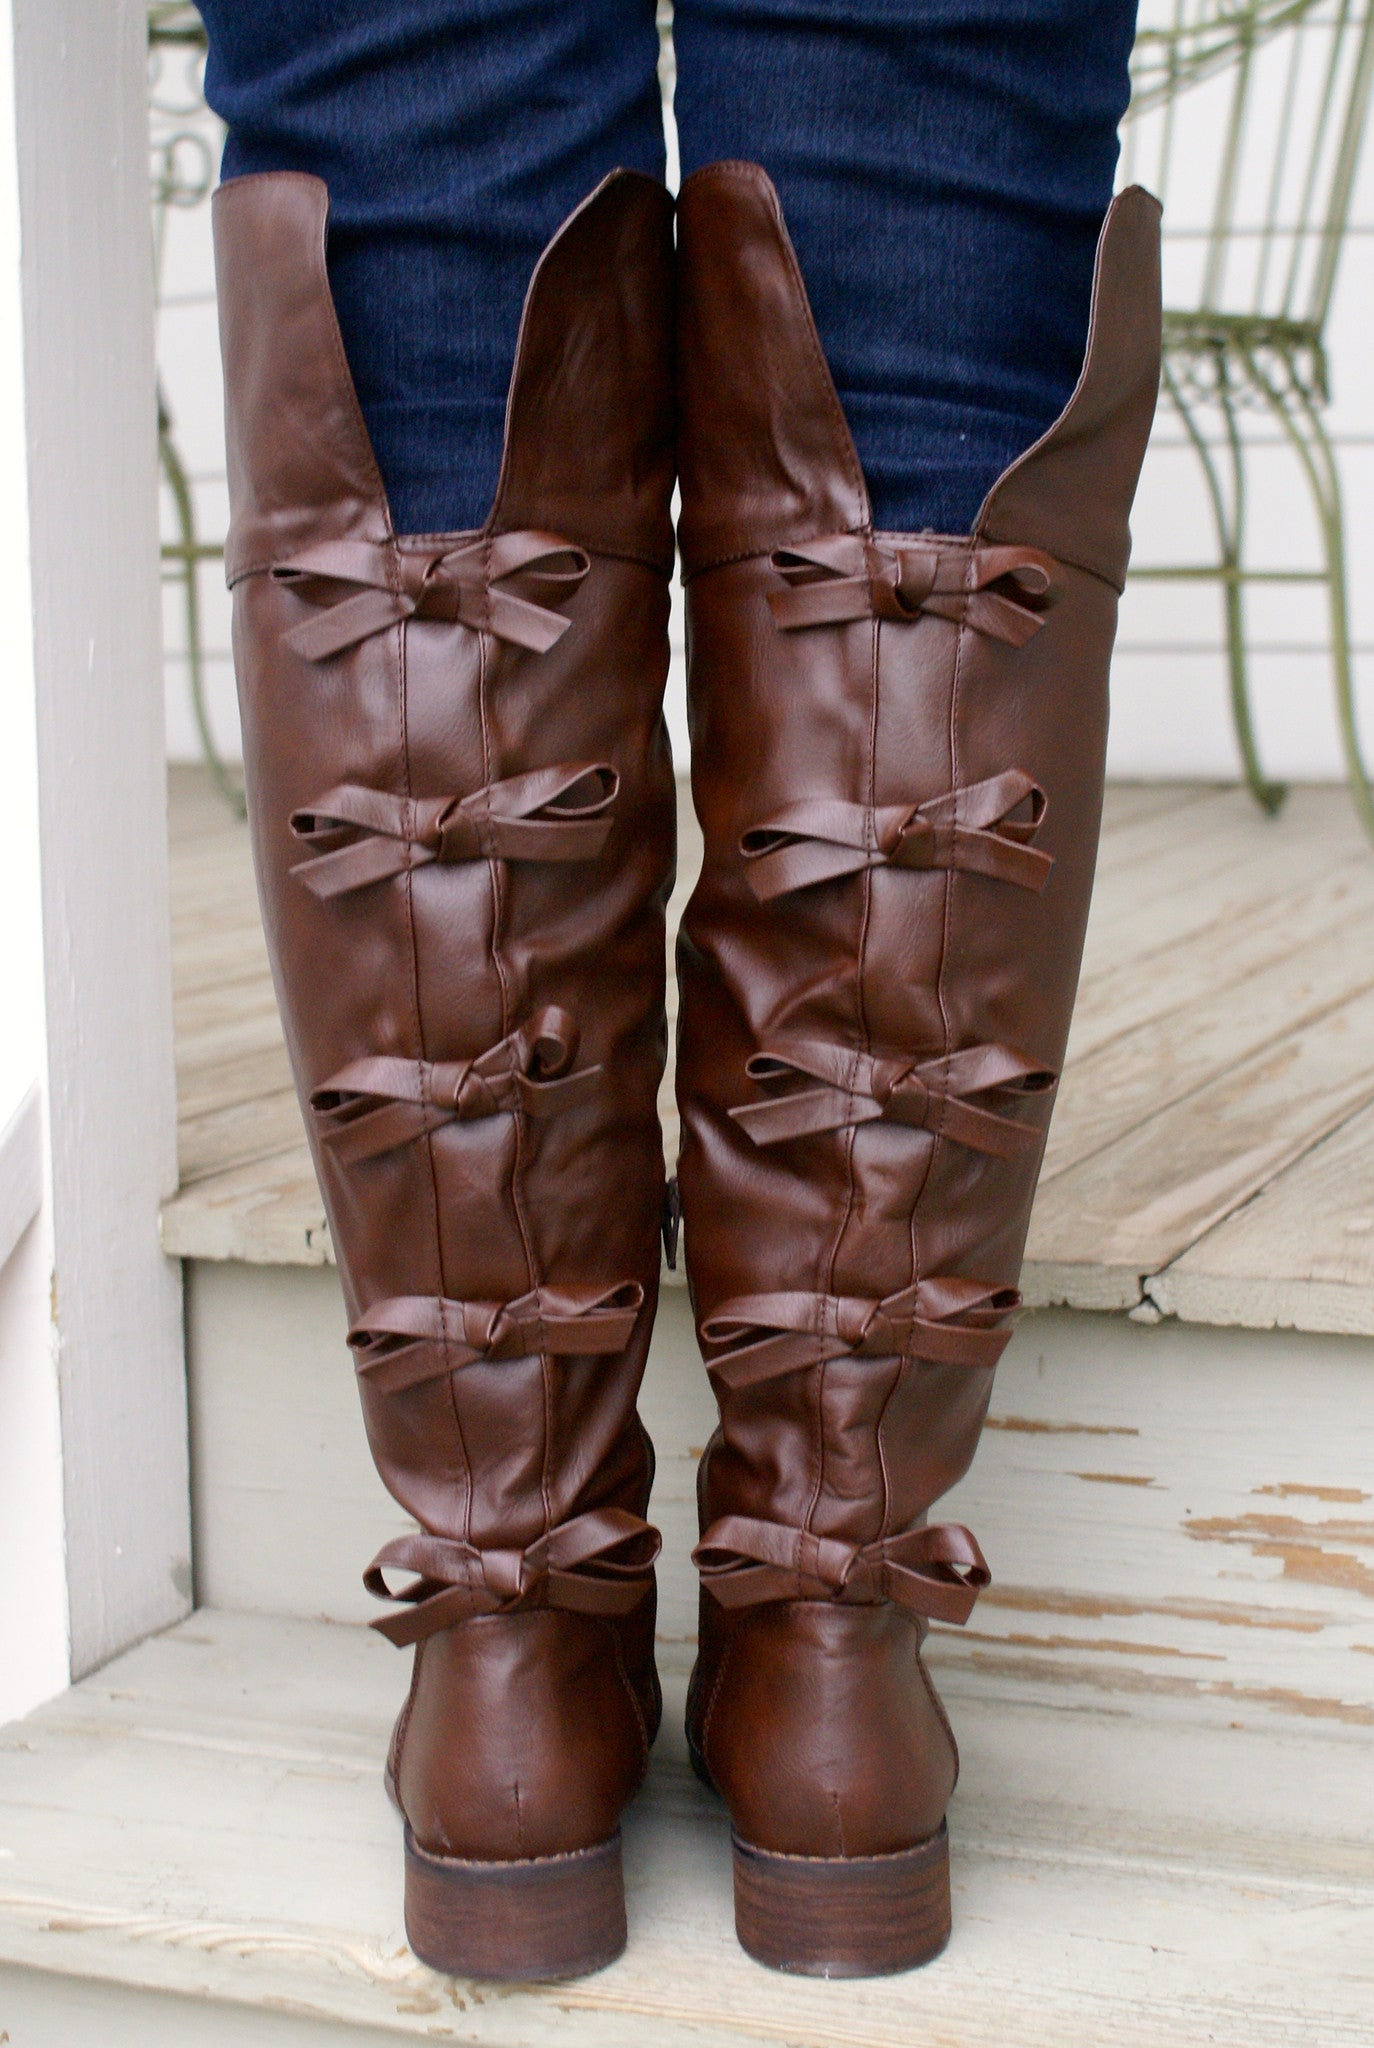 Brown Boots with Bows